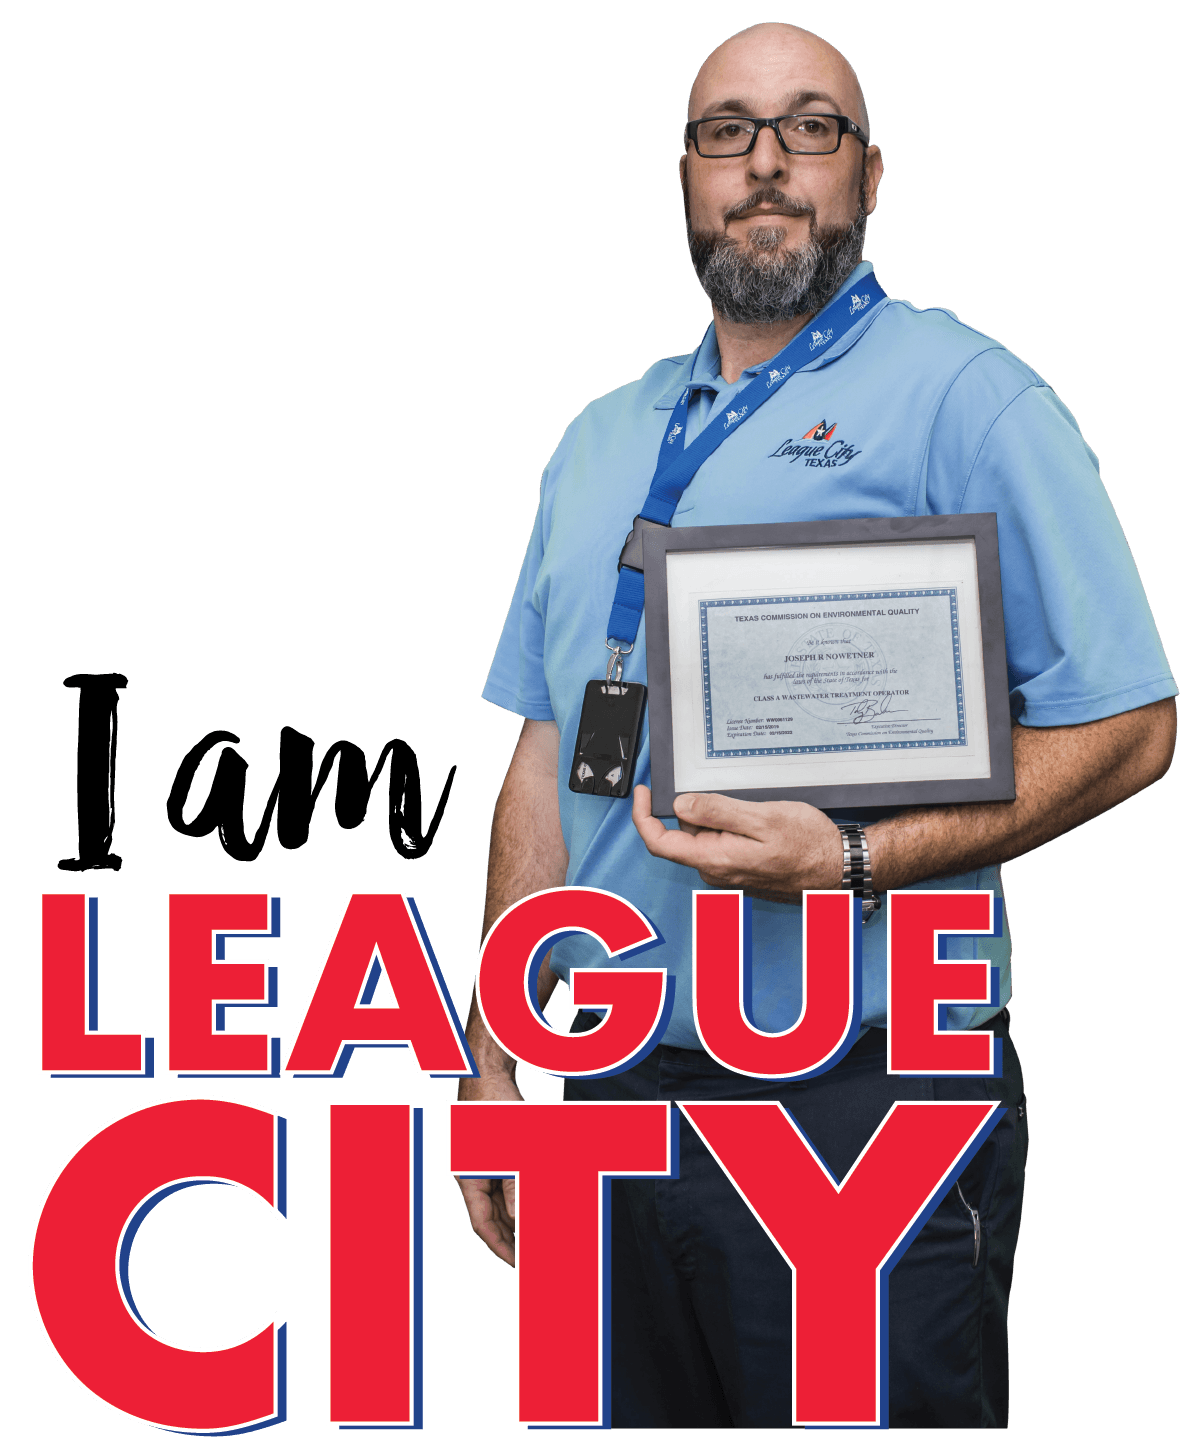 bald guy with beard posing with a framed certificate